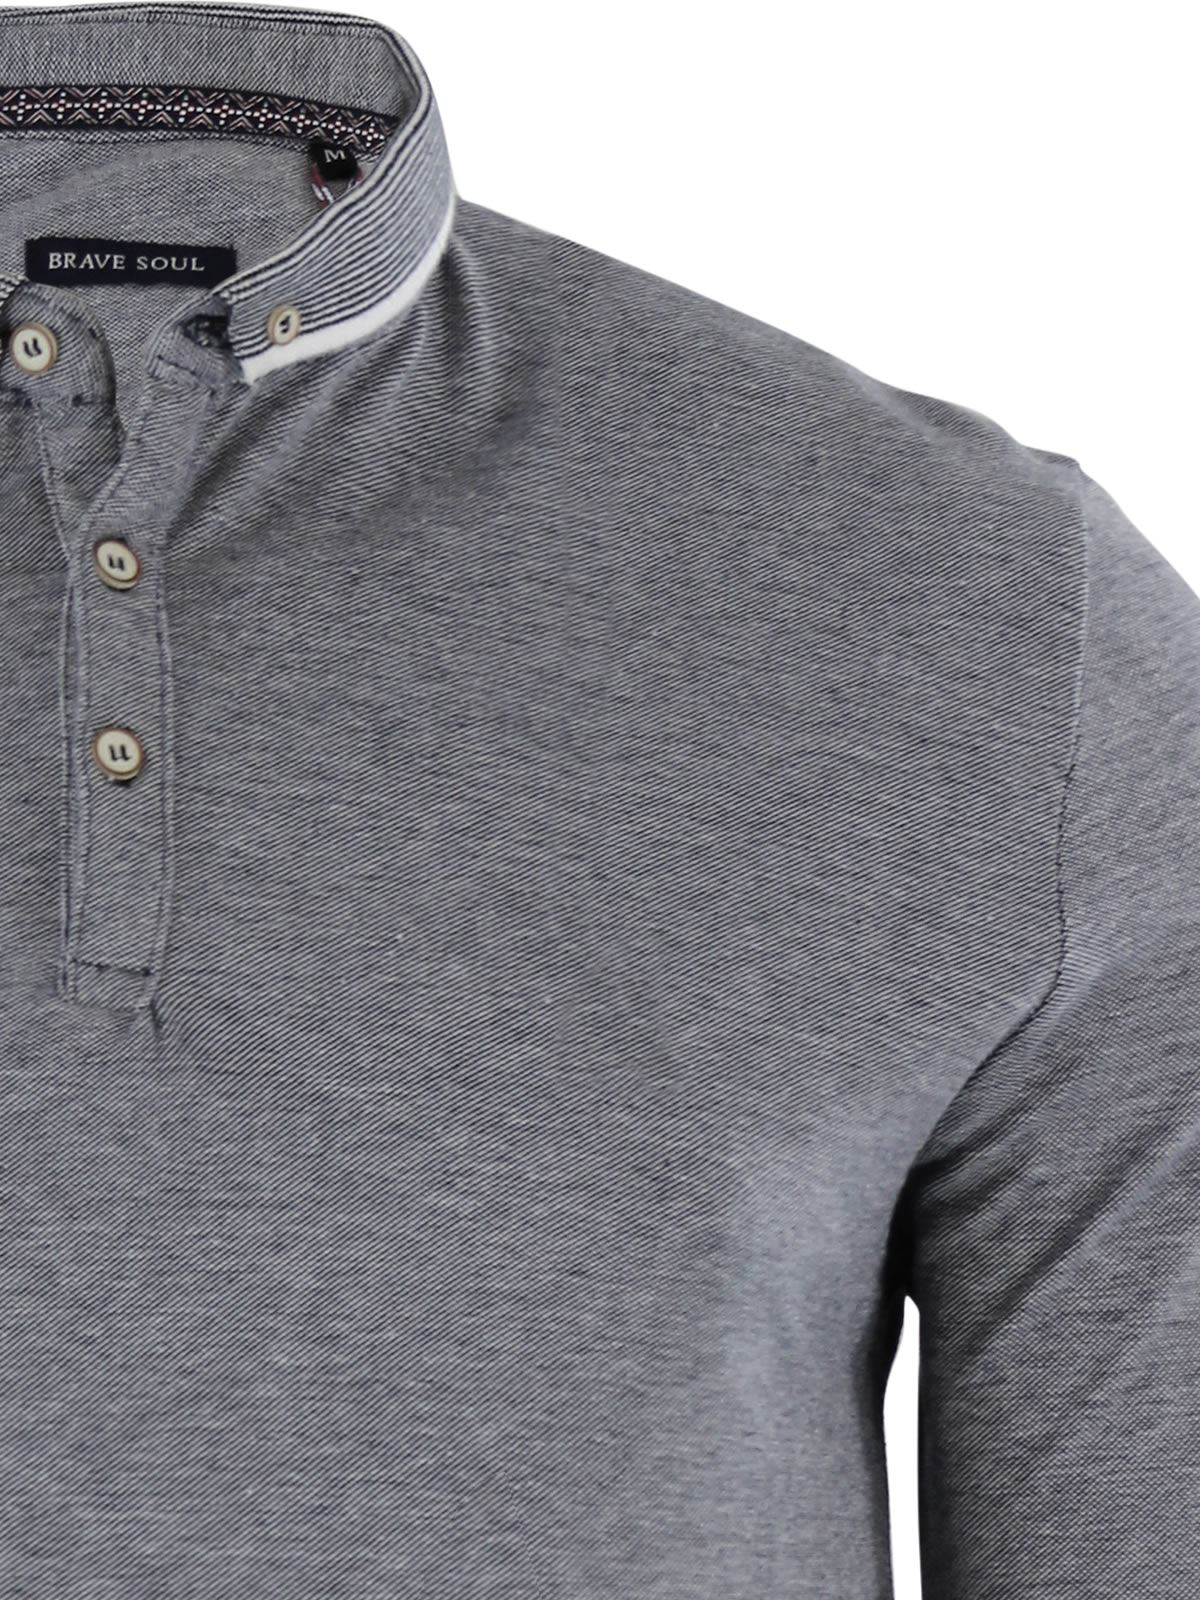 Brave-Soul-Mens-Polo-Shirt-Long-Sleeve-Collared-Top-In-Various-Styles thumbnail 109